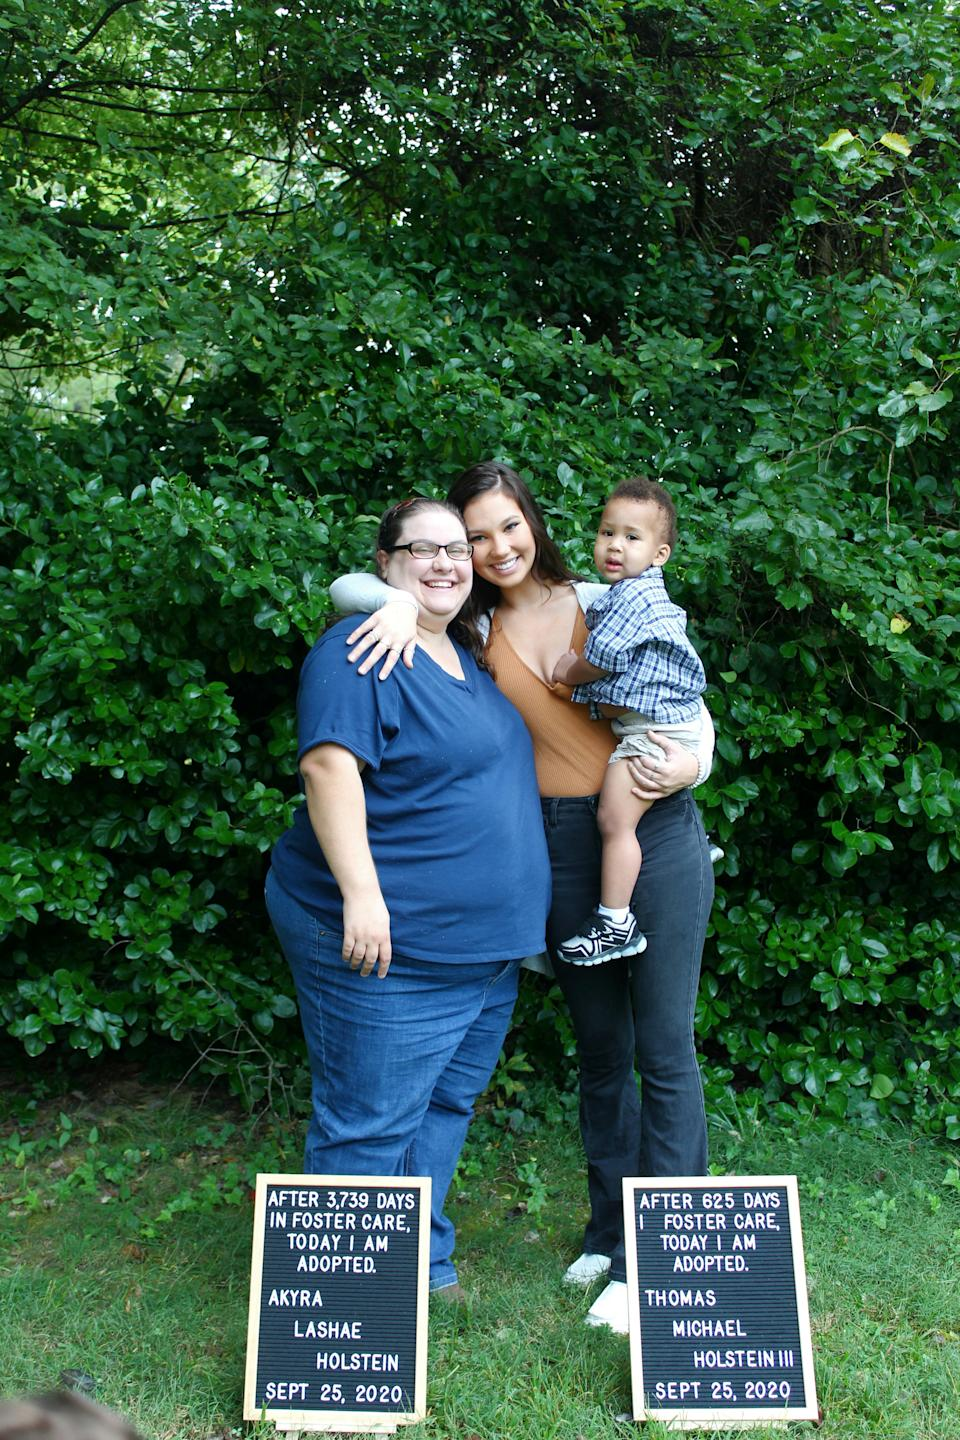 Akyra with her adopted mum Katie and adopted brother Michael. (SWNS)